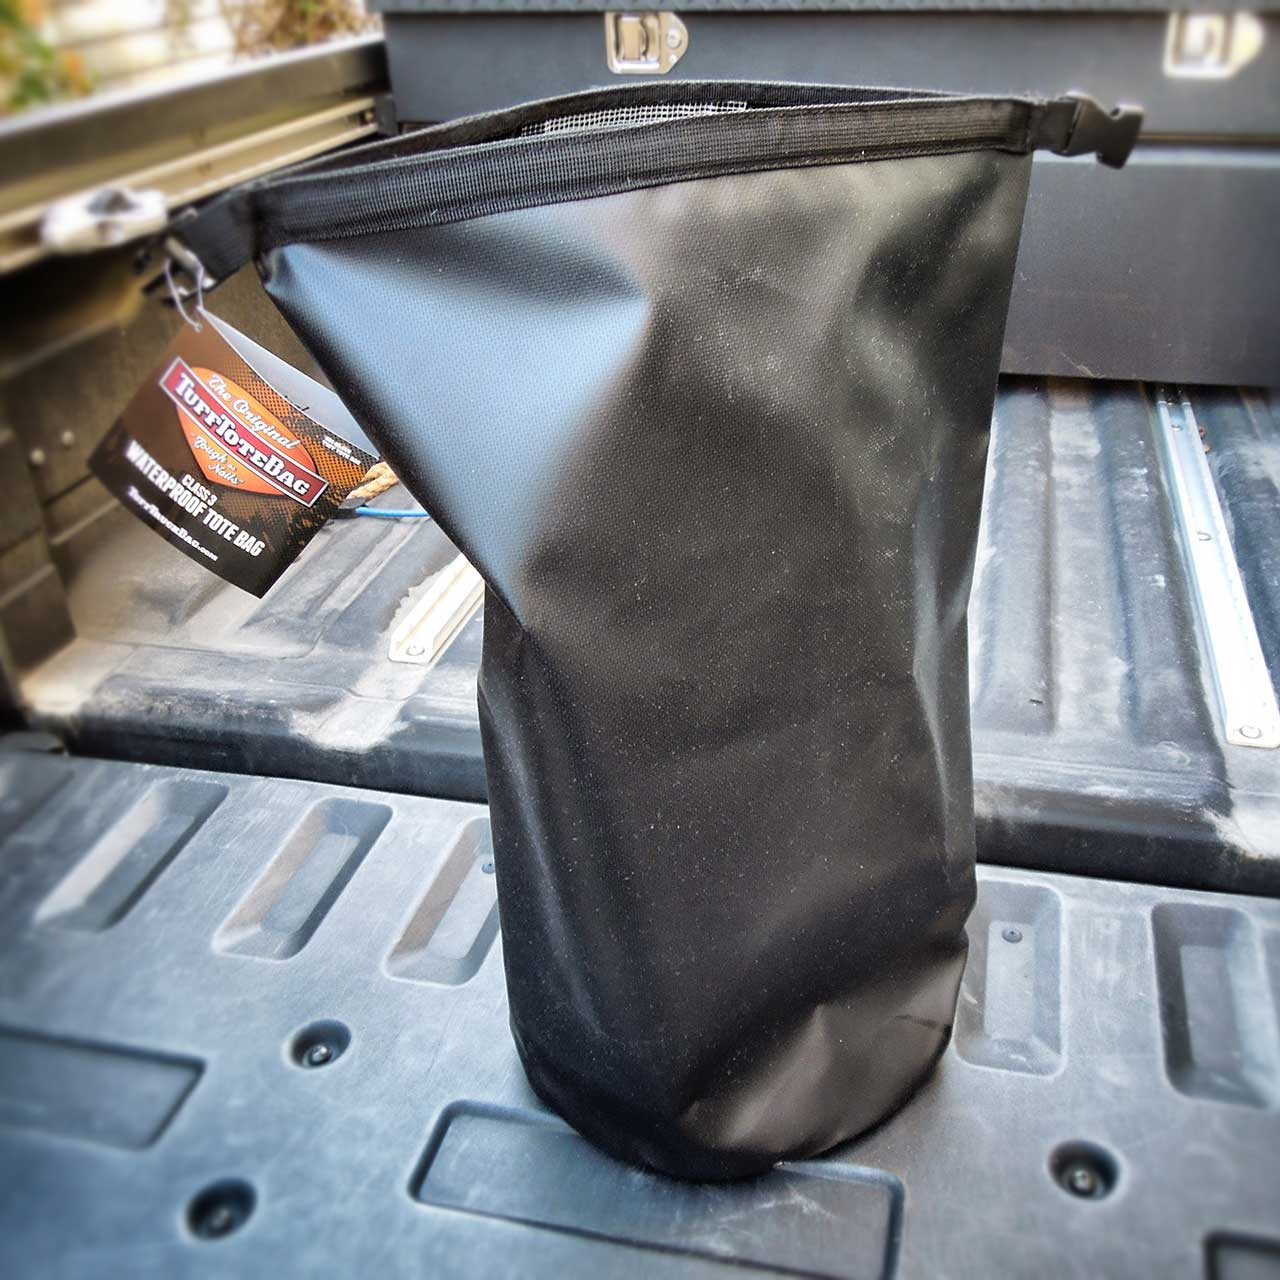 Back view of the rolled open Tuff Tote bag handle, handle rolls up to open the black waterproof Tuff Tote bag.